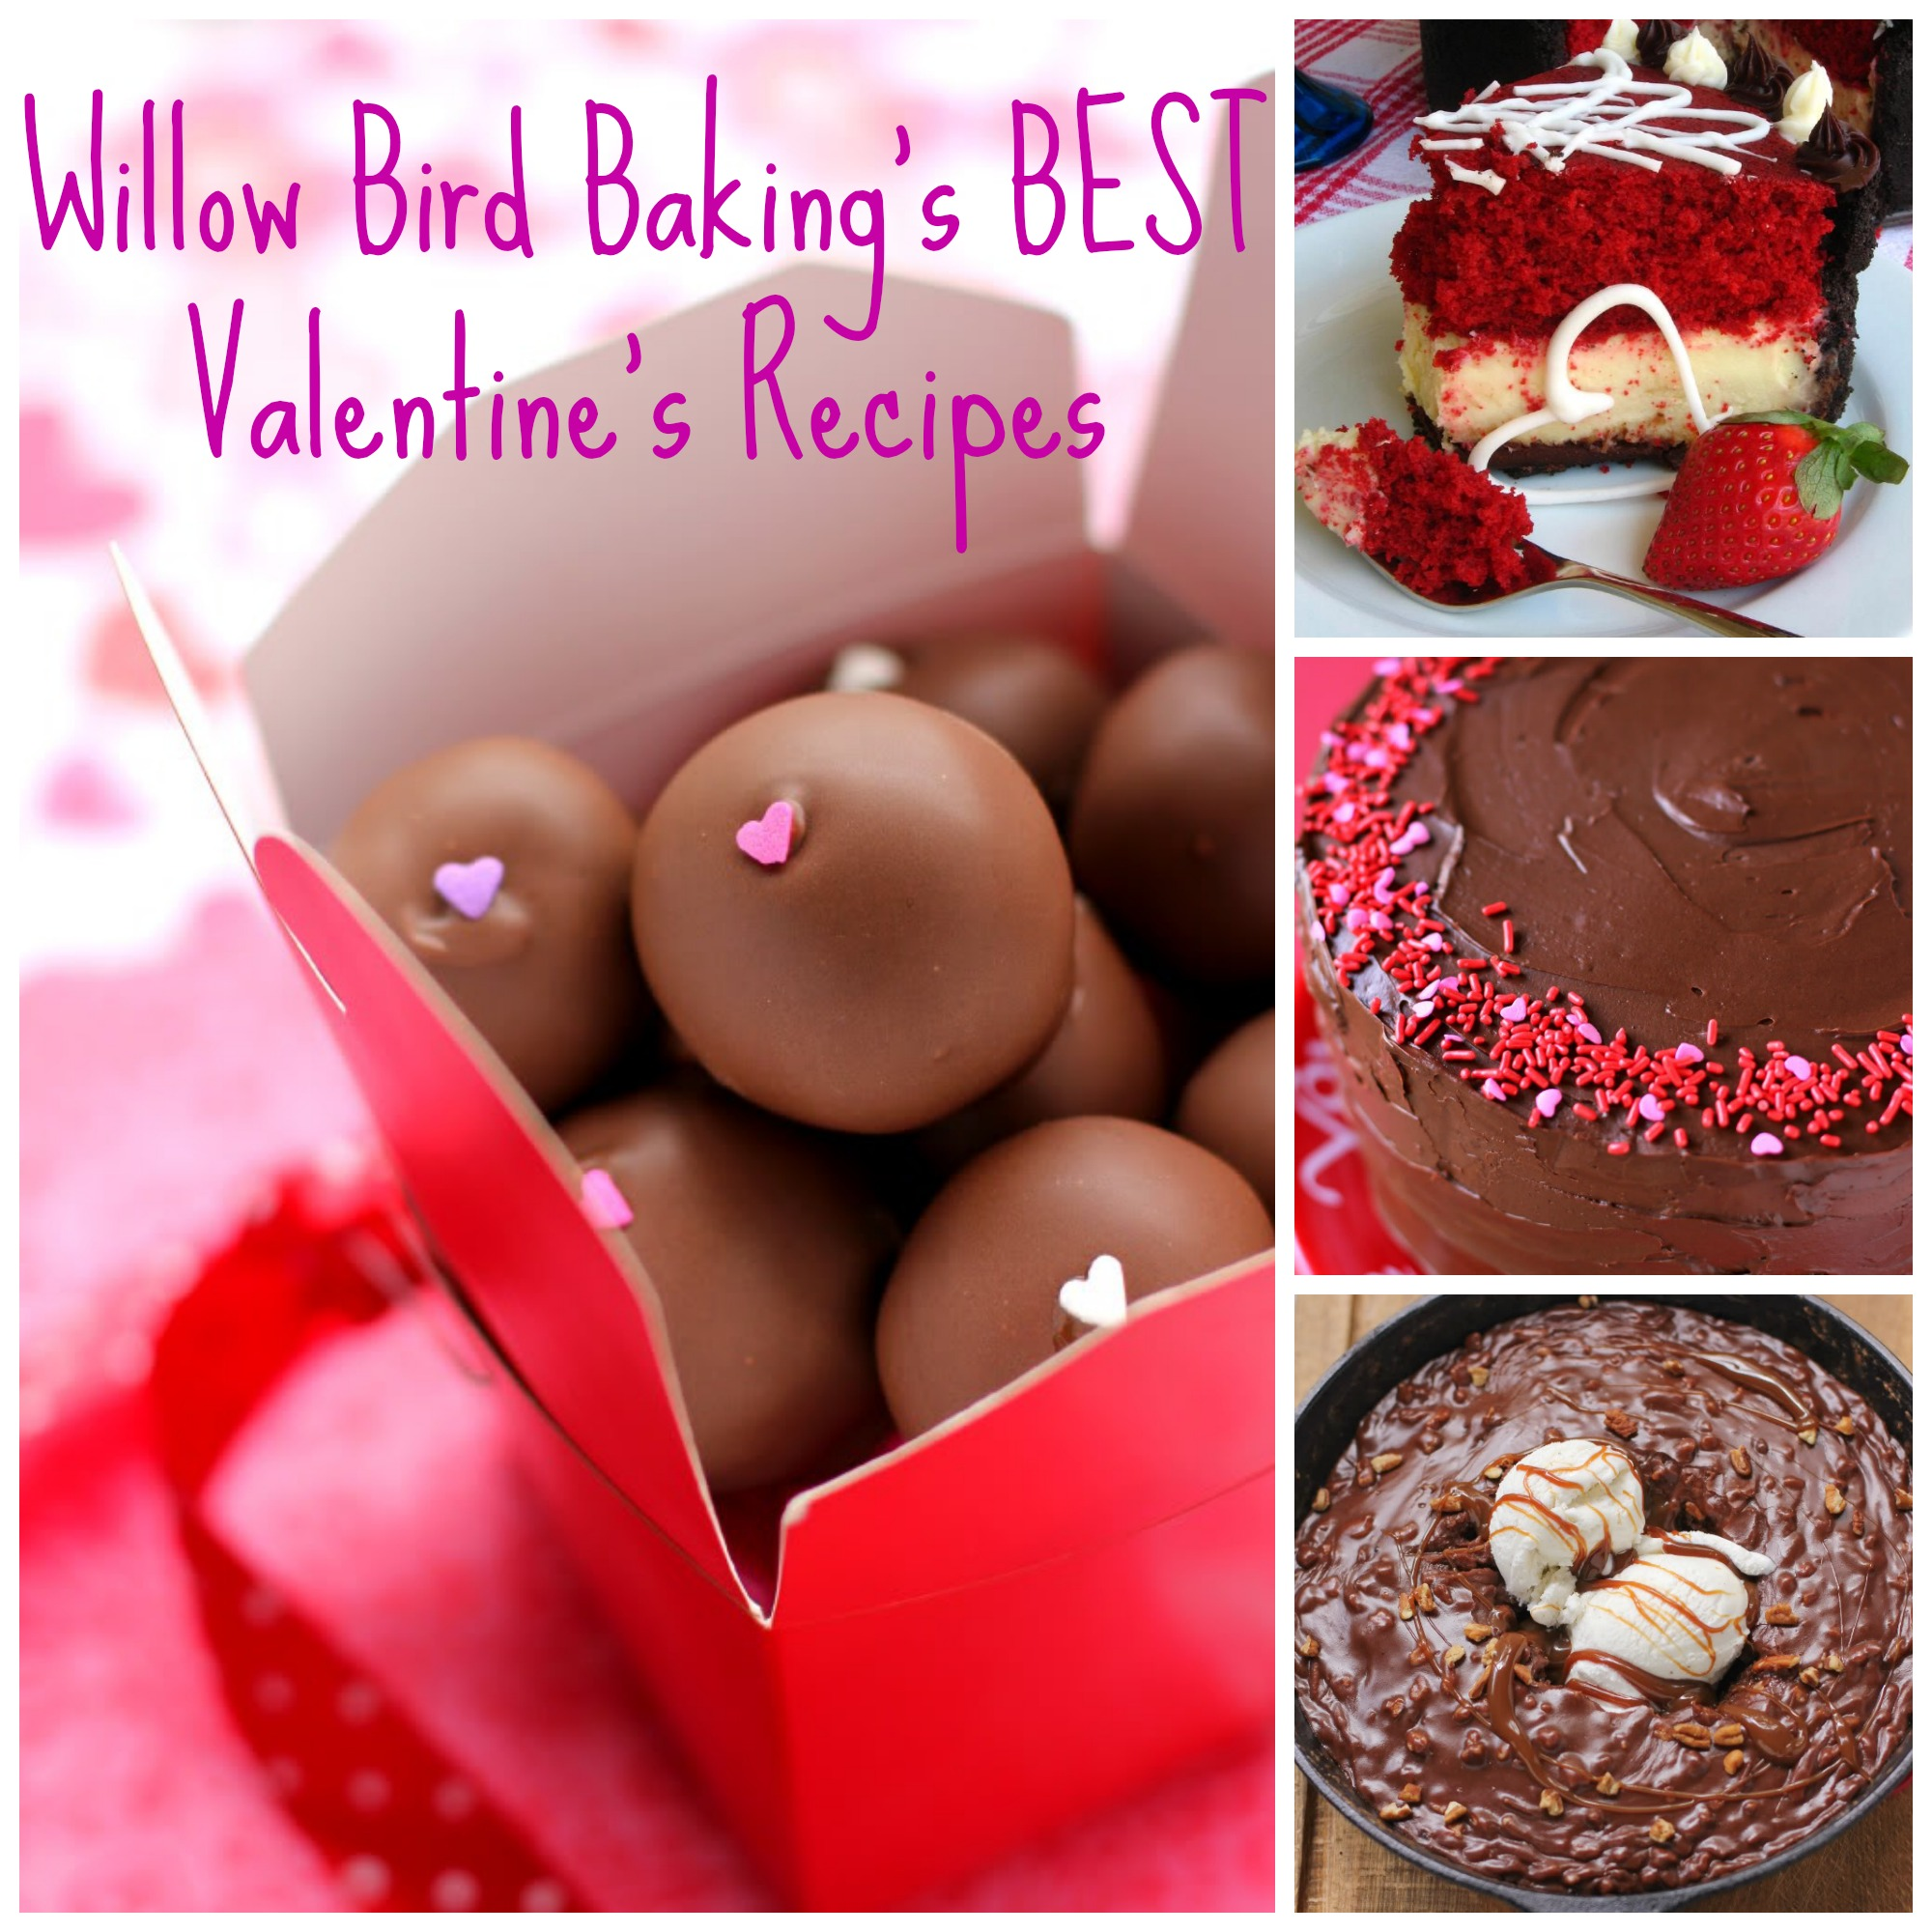 The Best Valentine S Day Recipes From Willow Bird Baking